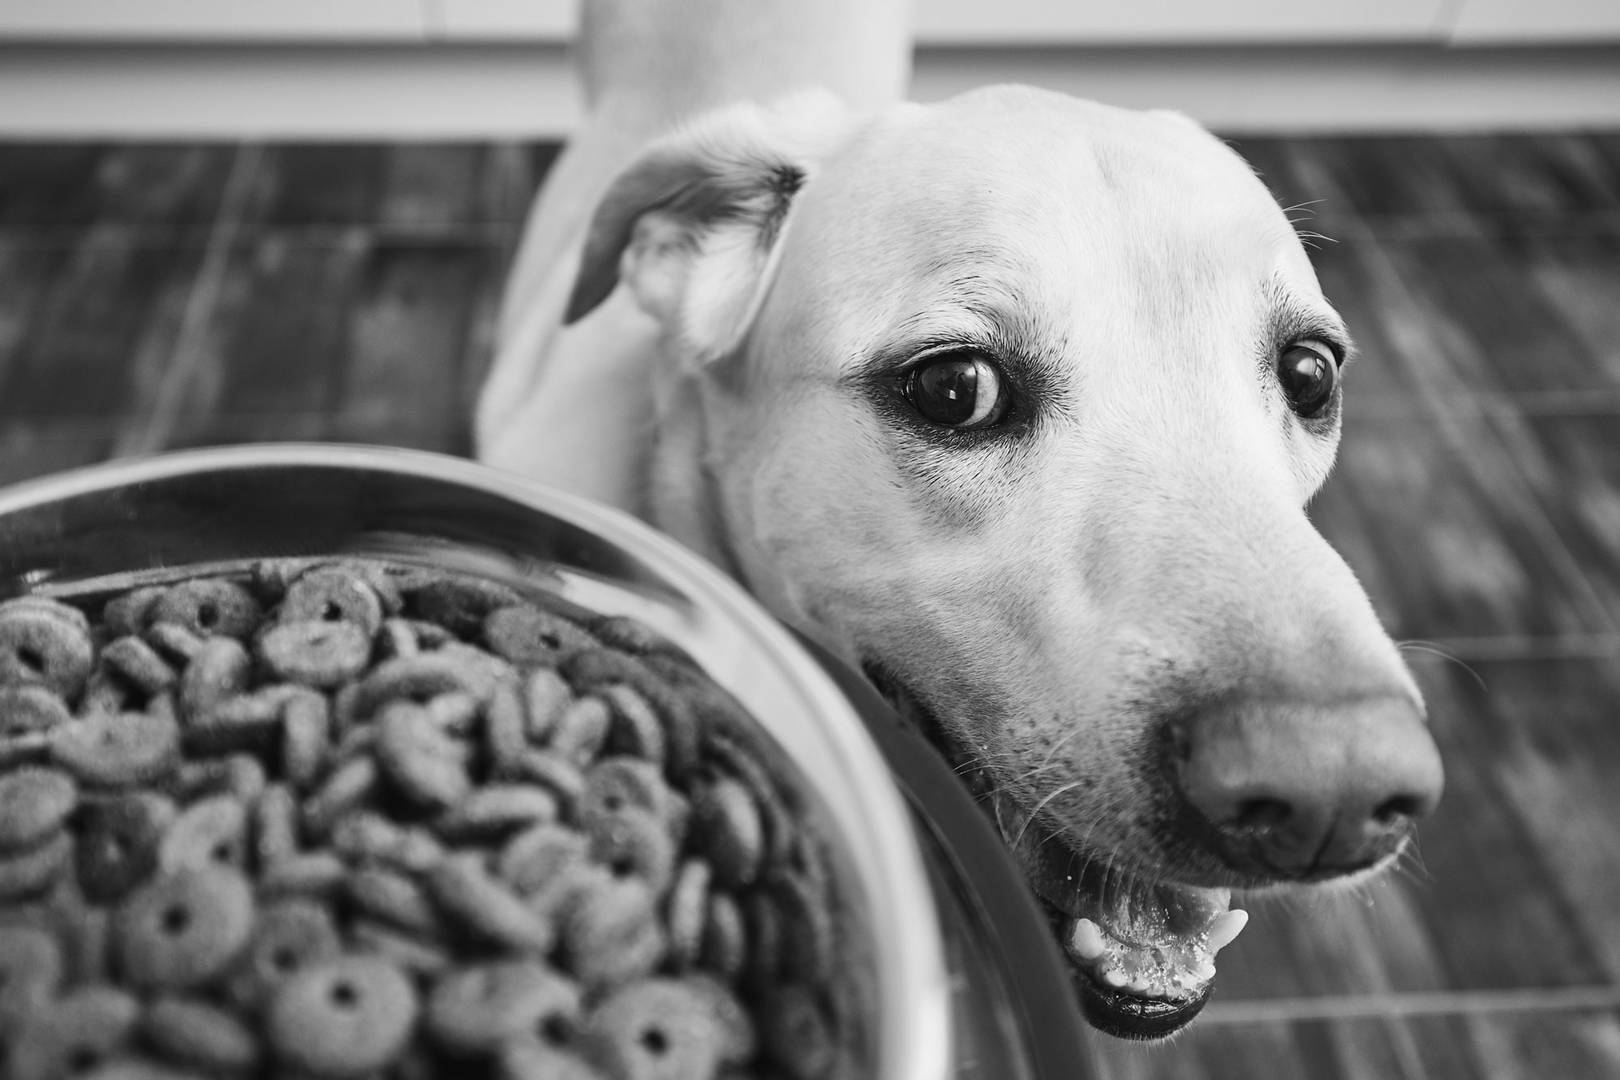 Dog looking at dog food in dog dish